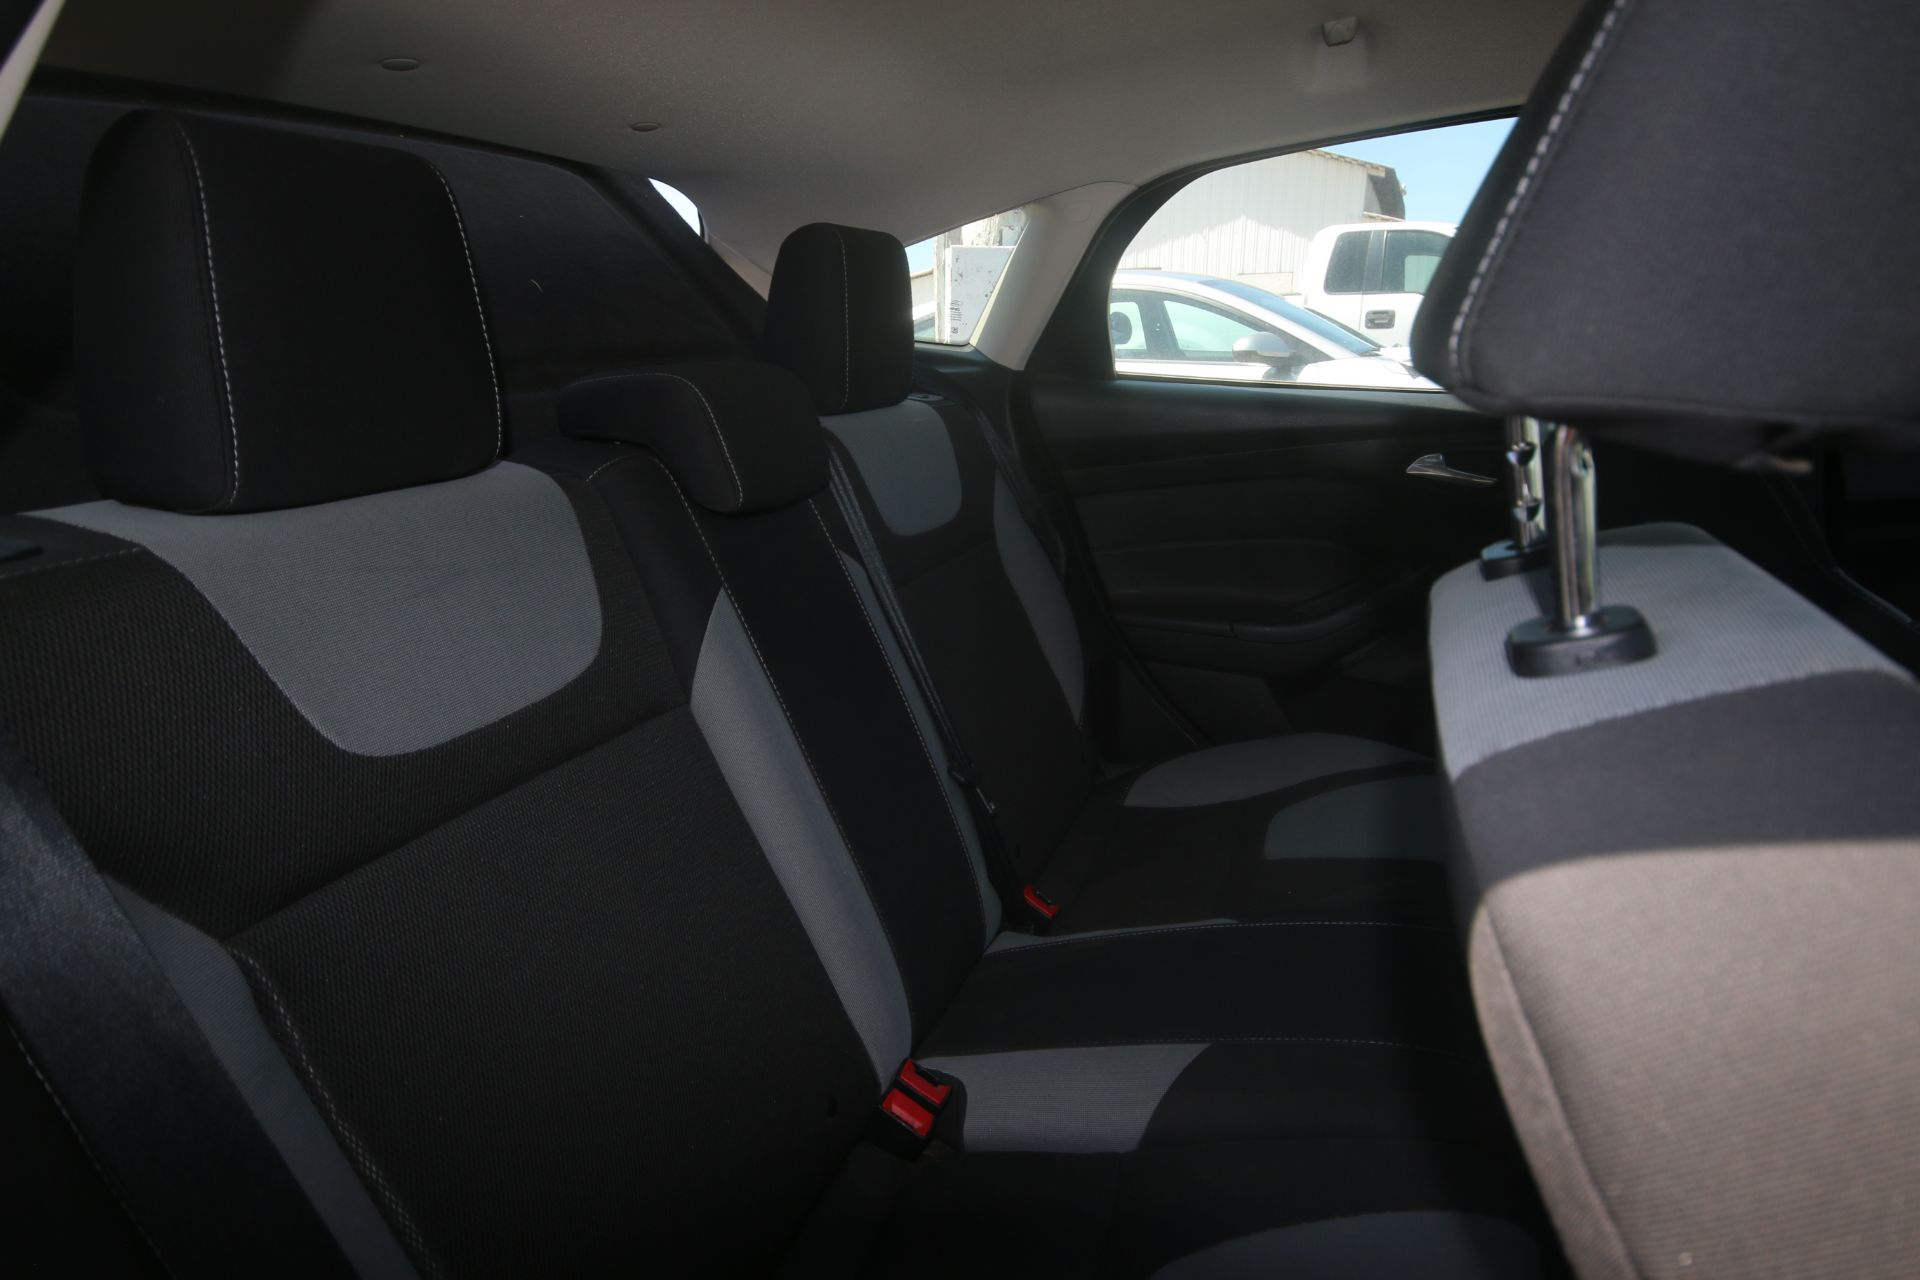 2012 White Ford Focus SE Hatchback 4D, VIN #: 1FAHP3K27CL423326, with 116,017 Miles, with 4-Doors, - Image 7 of 26